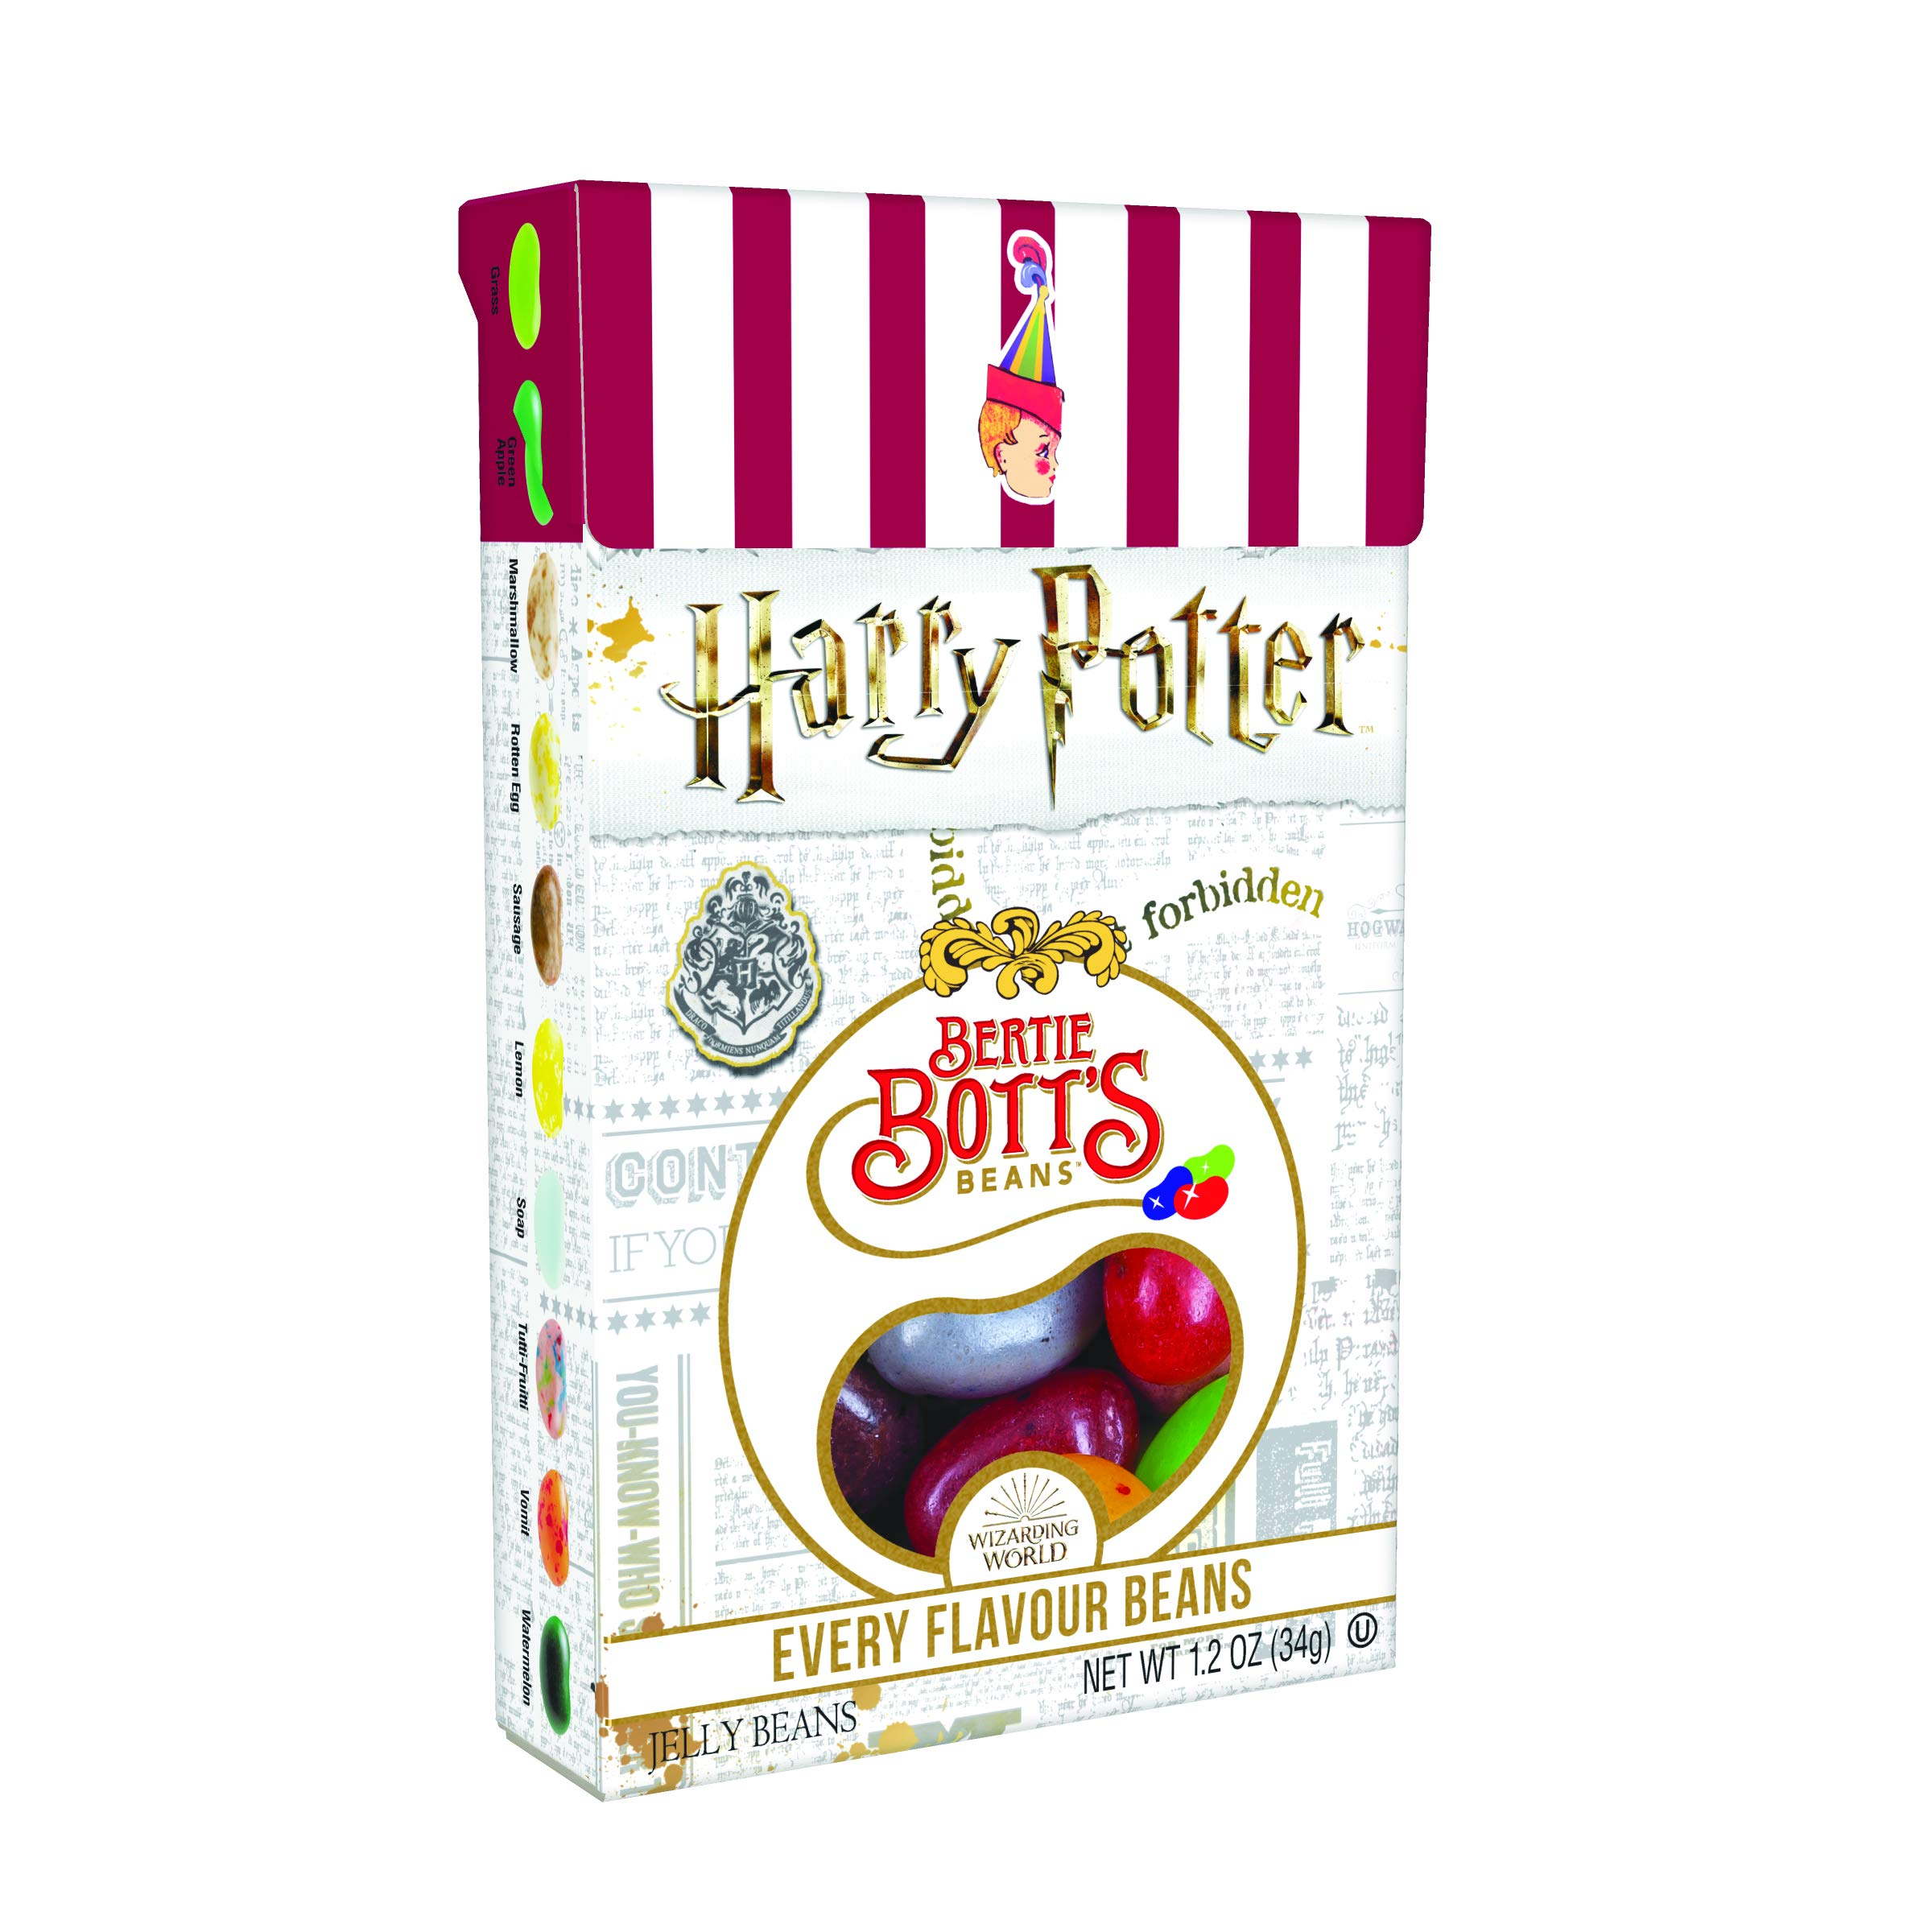 Jelly Belly Harry Potter Bertie Bott's Every Flavor Jelly Beans, 1.2-oz, 48 Pack